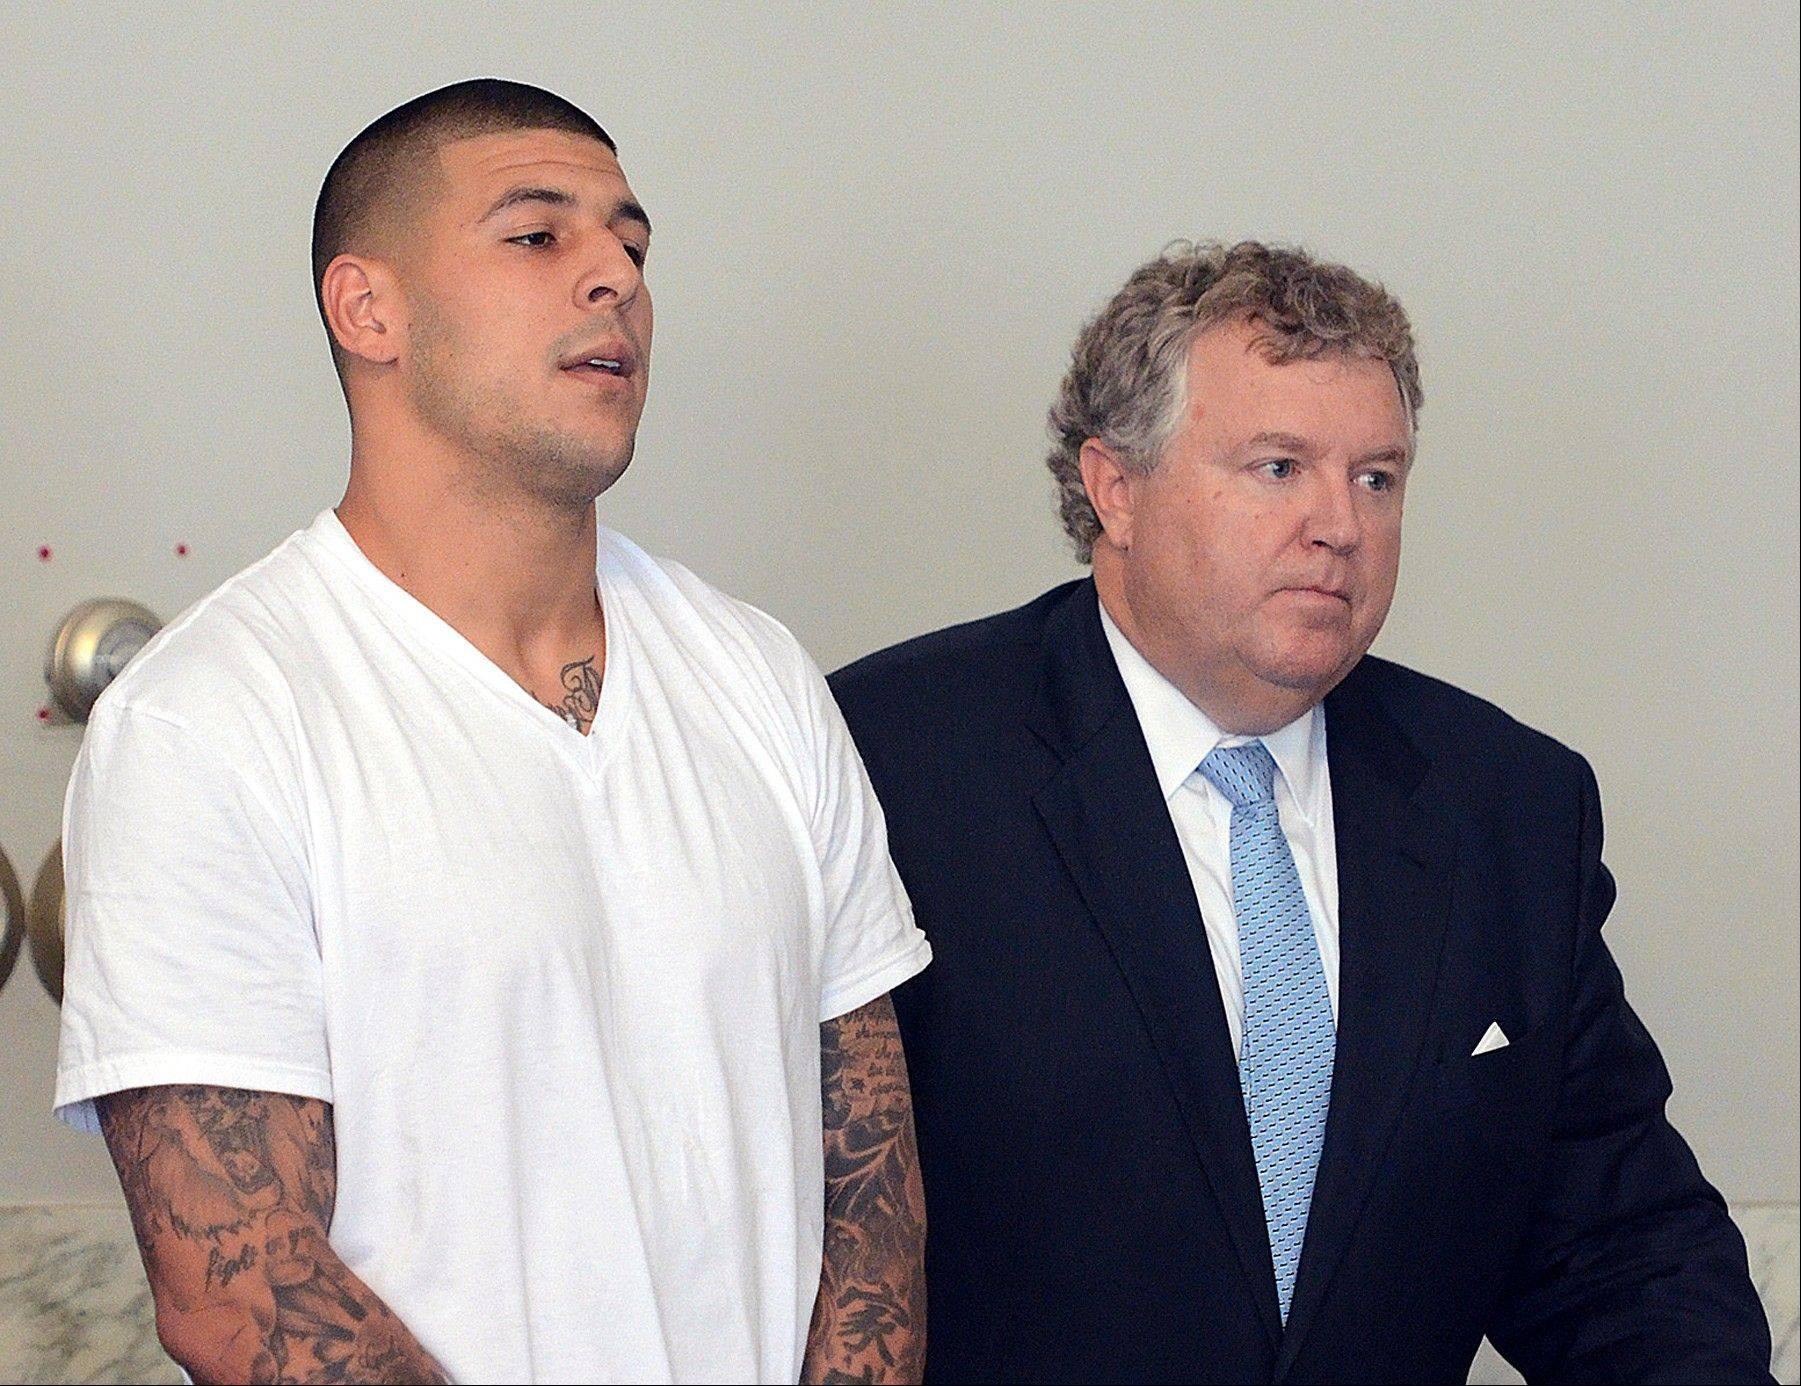 Aaron Hernandez, left, stands with his attorney, Michael Fee, right, during arraignment. Since Hernandez was arrested last week in the shooting death of a friend whose body was found a mile away from his home, a portrait has emerged of a man whose life away from the field included frequent connections with police-related incidents that started as long ago as his freshman year at the University of Florida.